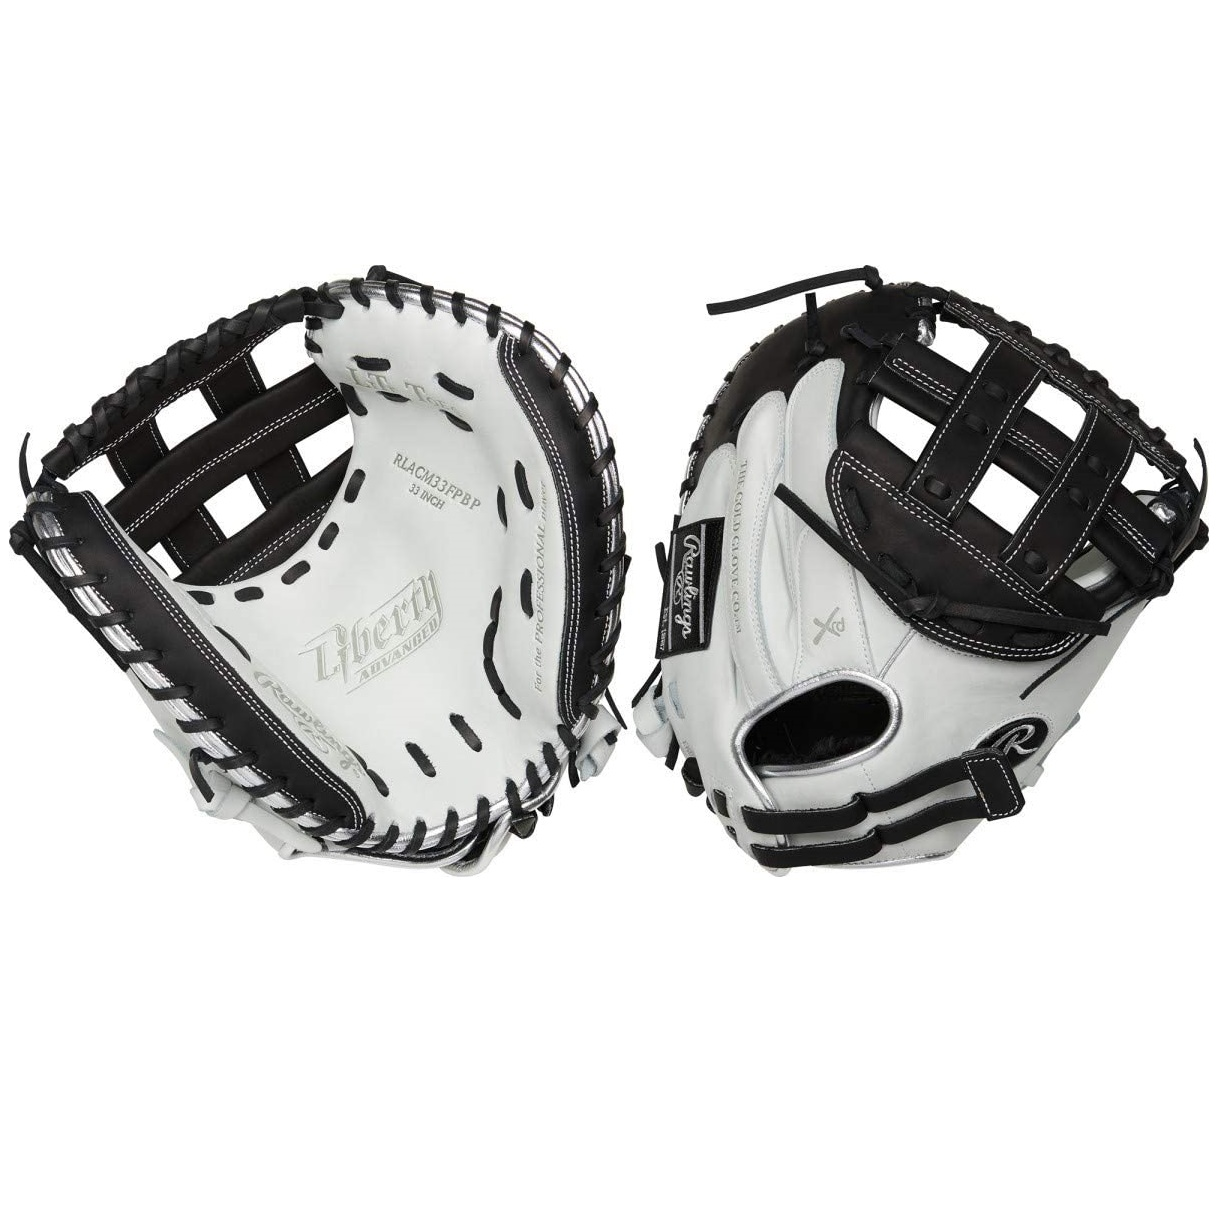 rawlings-liberty-advanced-limited-2-0-33-fastpitch-softball-catchers-mitt-right-hand-throw RLACM33FPBP-RightHandThrow   The Rawlings Liberty Advanced Color Series 33-Inch catchers mitt provides unmatched